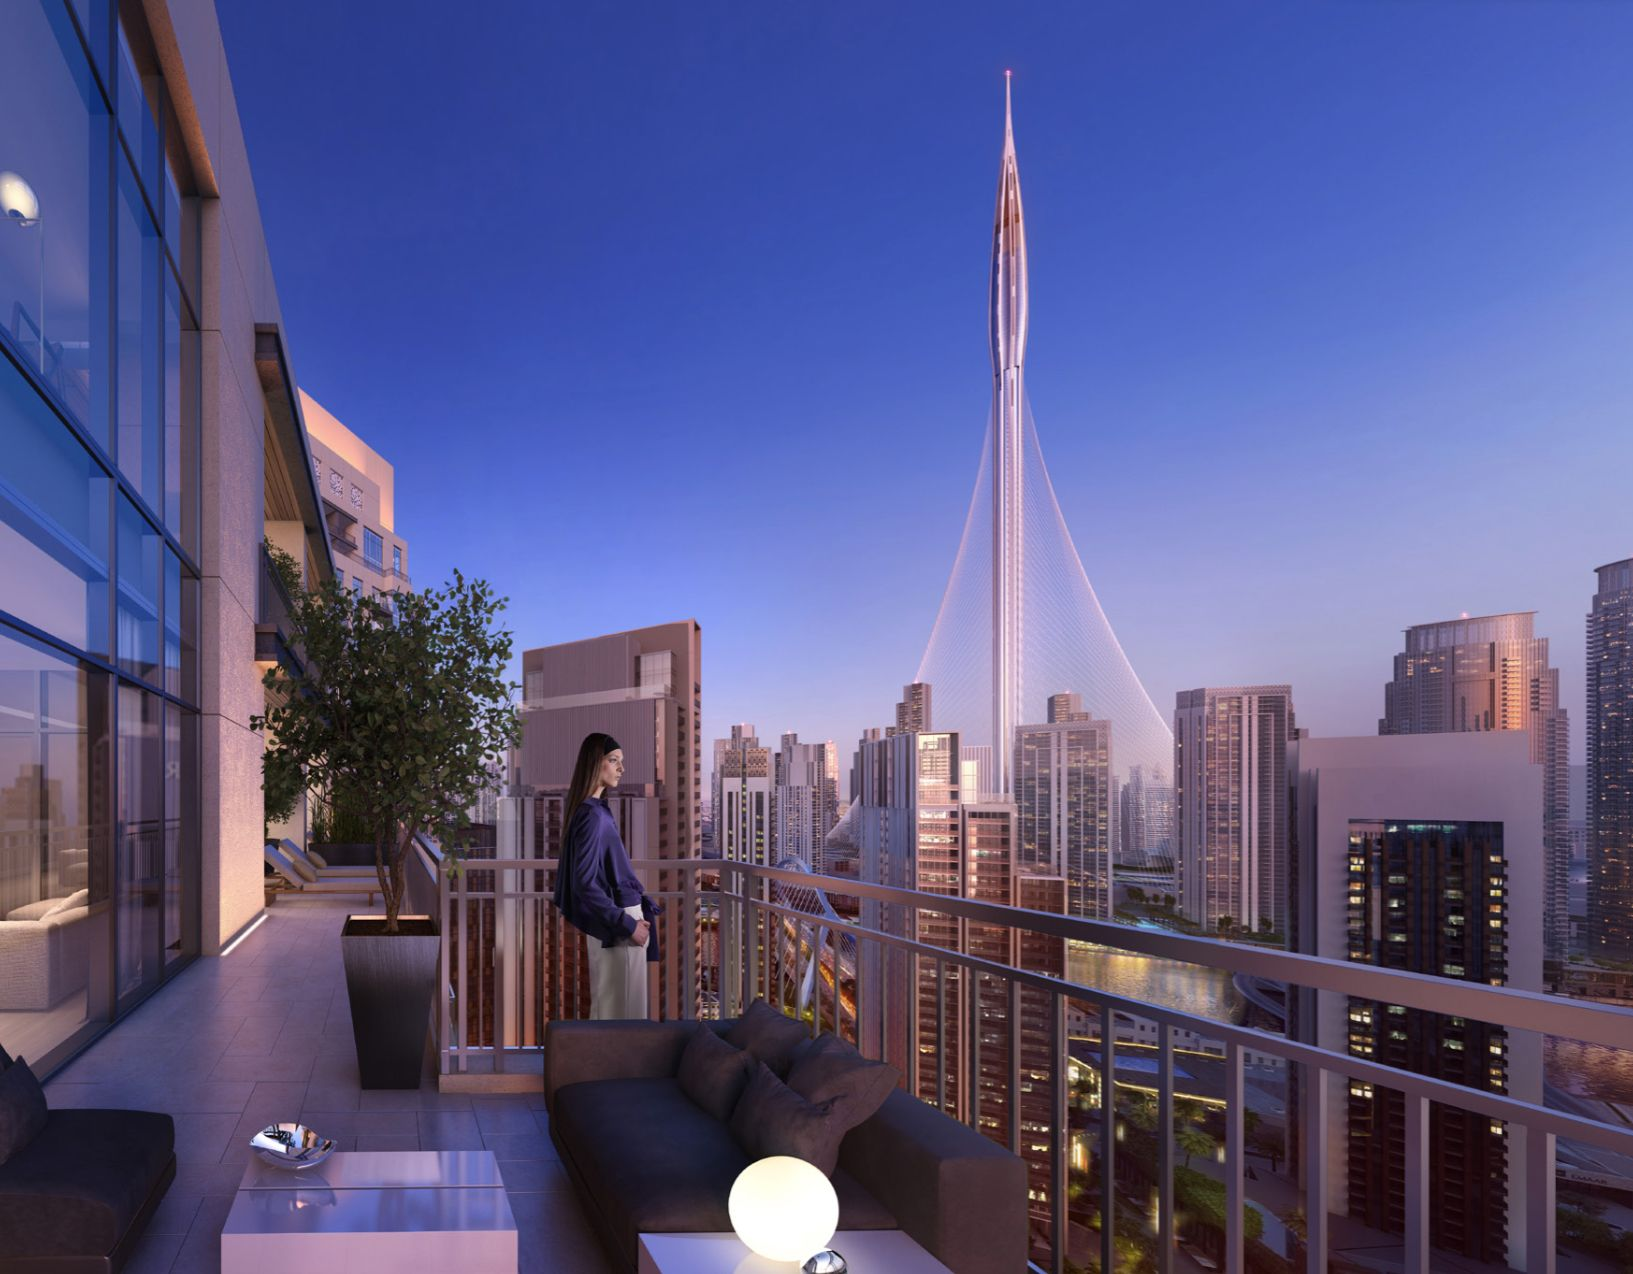 Creek Rise is a highly anticipated project located in